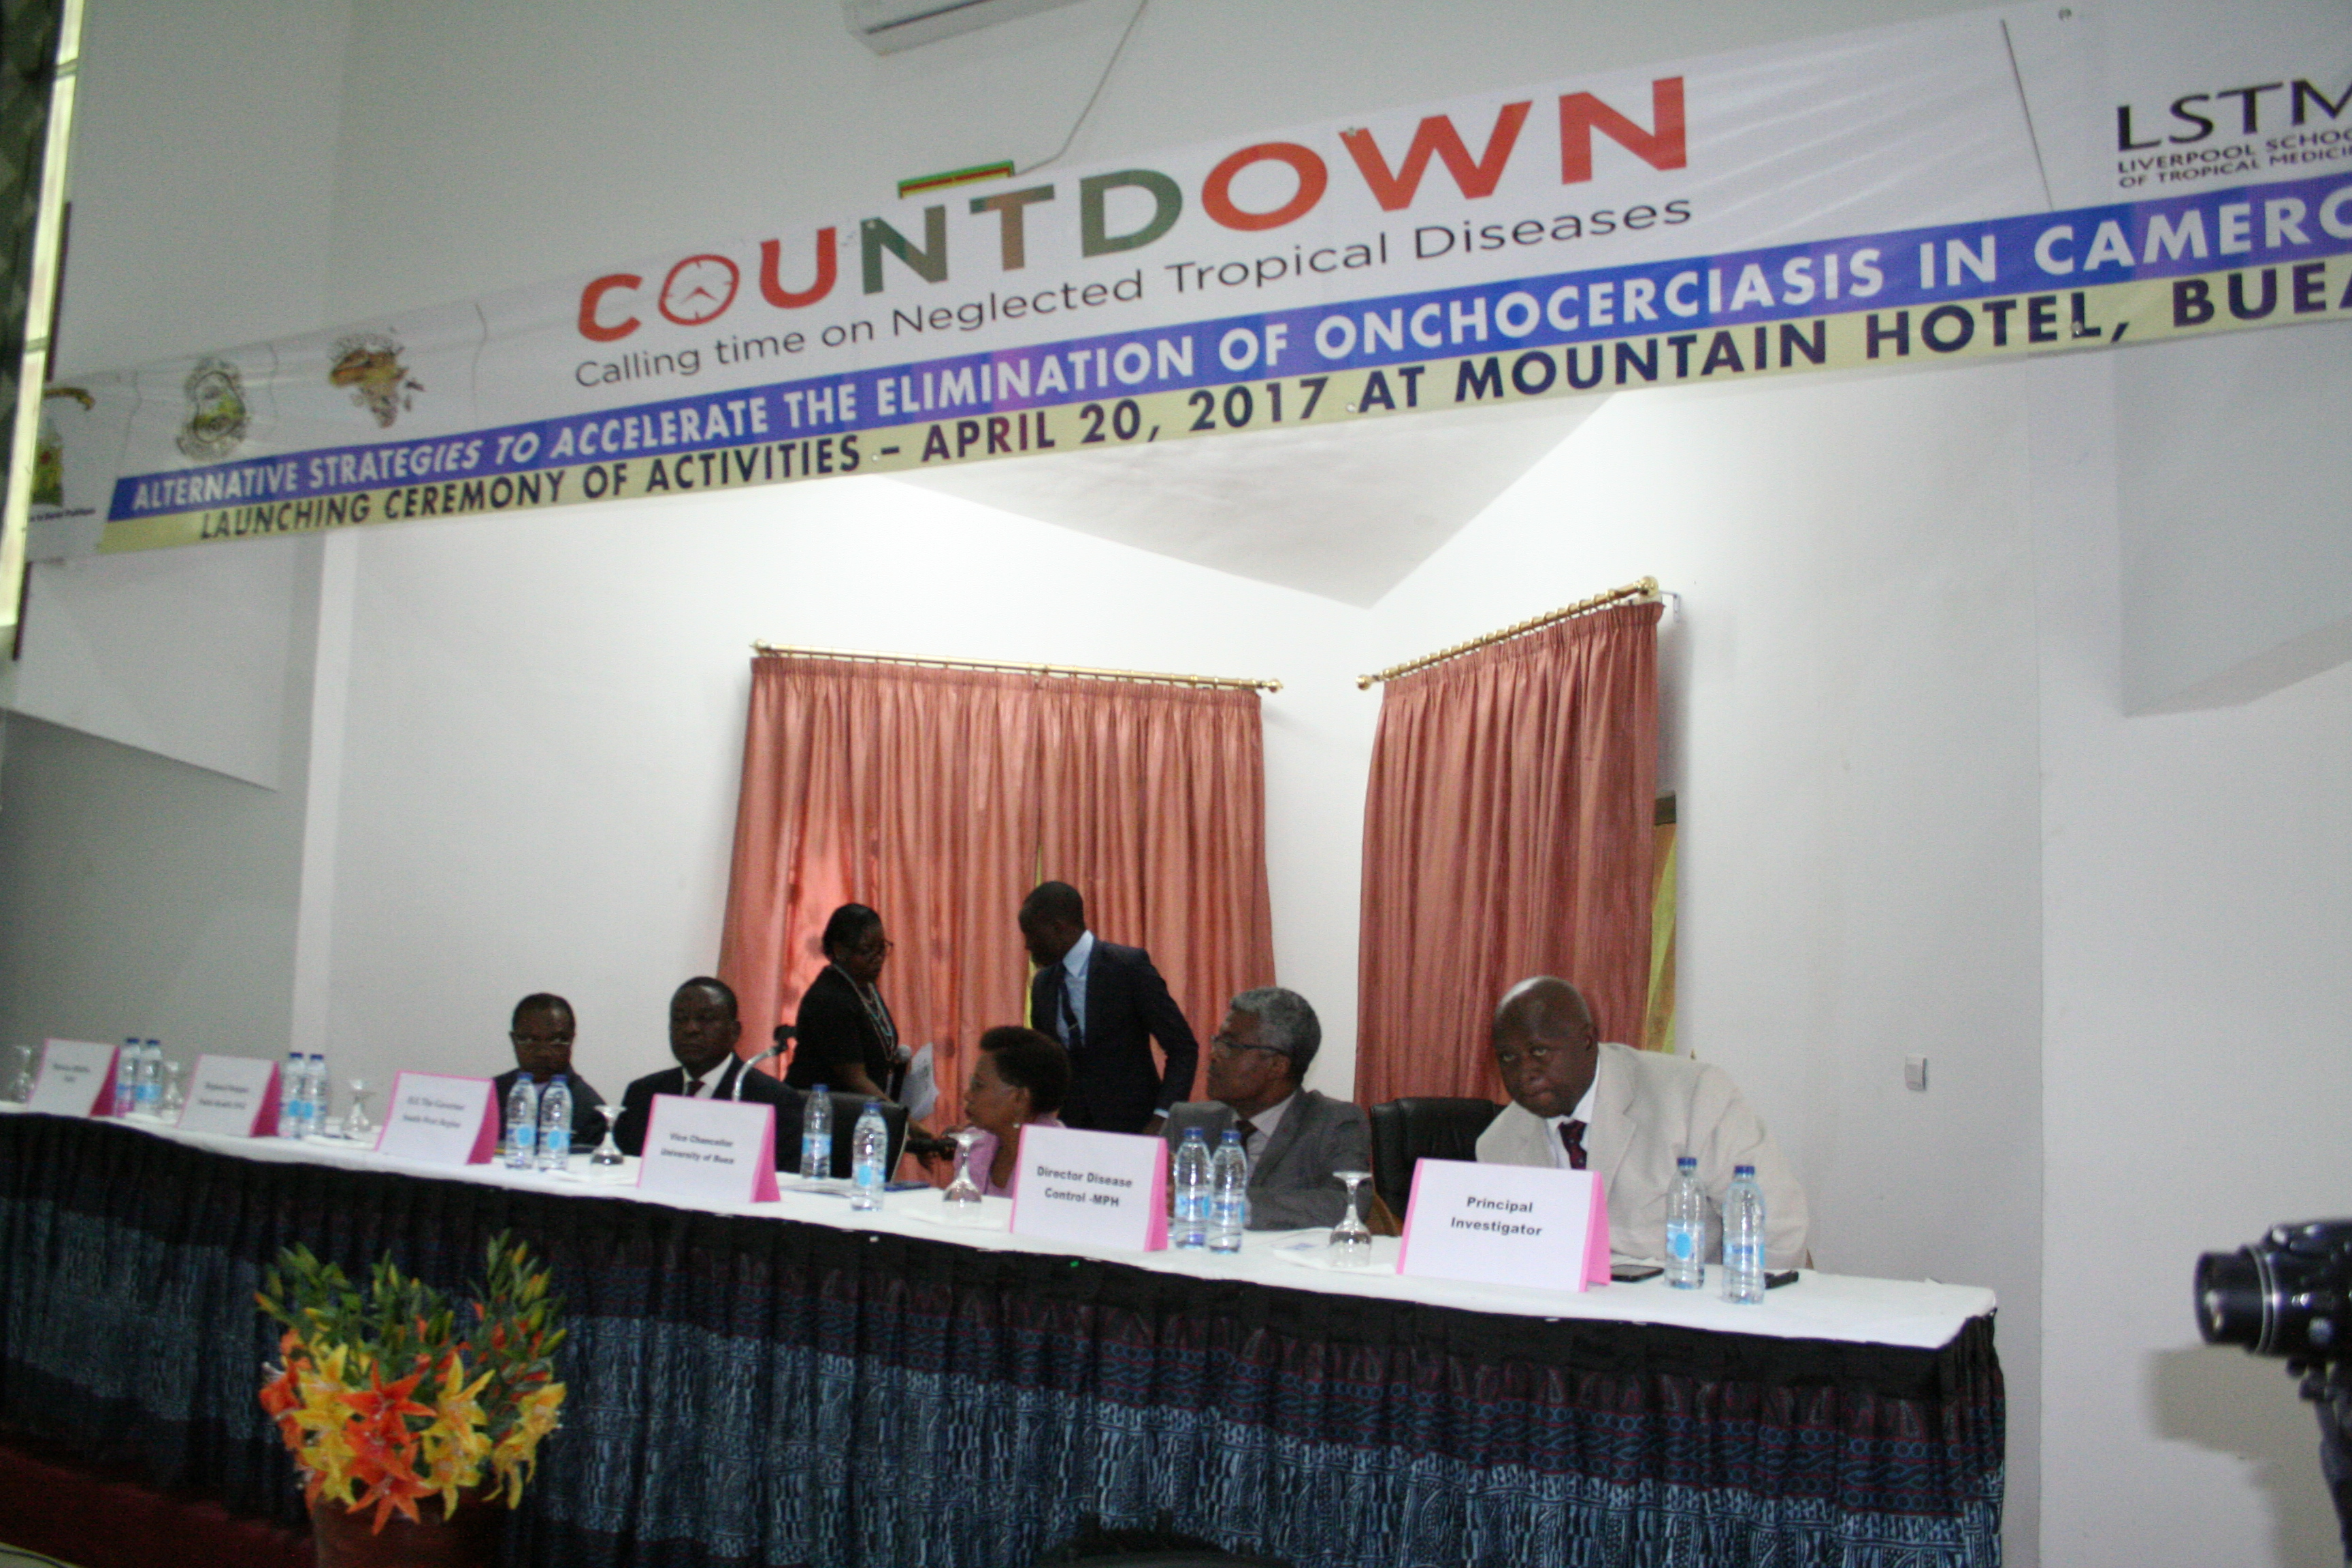 CouNTDown Cameroon – CouNTDown Project in Cameroon